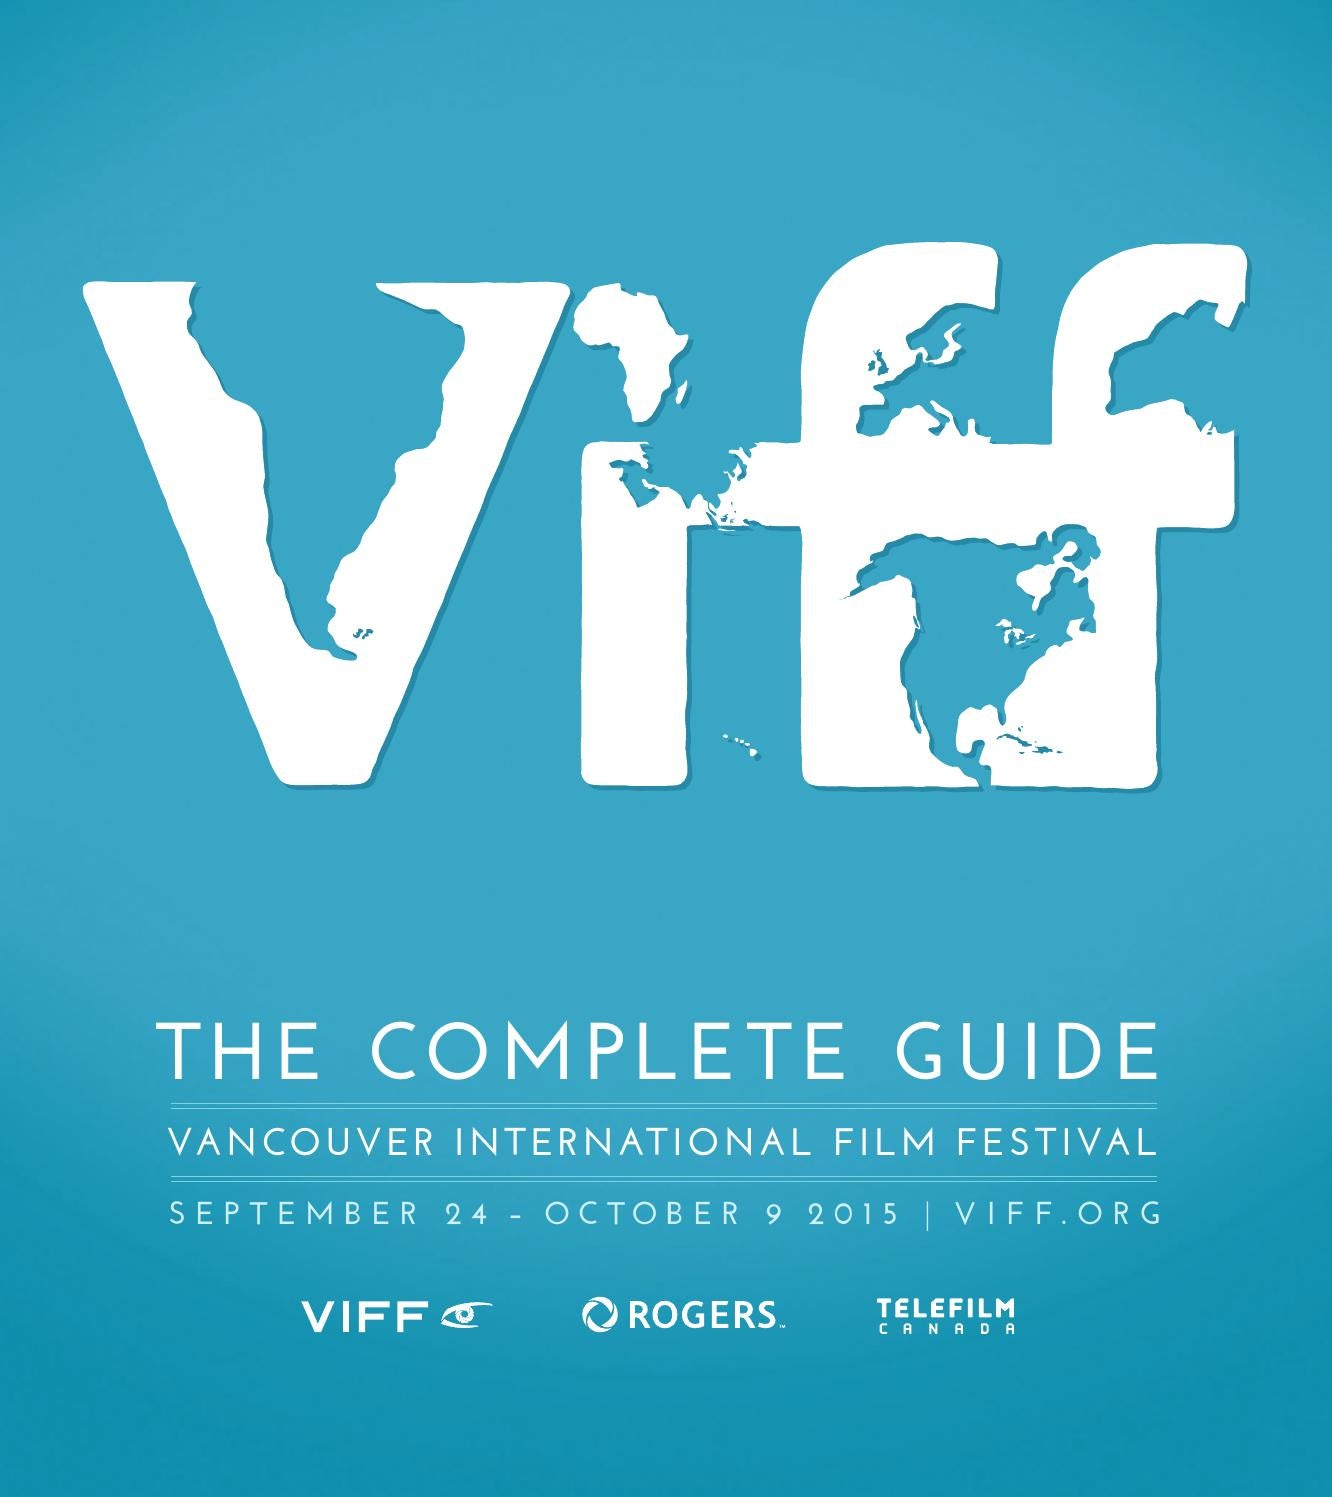 VIFF 2015 Complete Guide by Vancouver International Film Festival - issuu